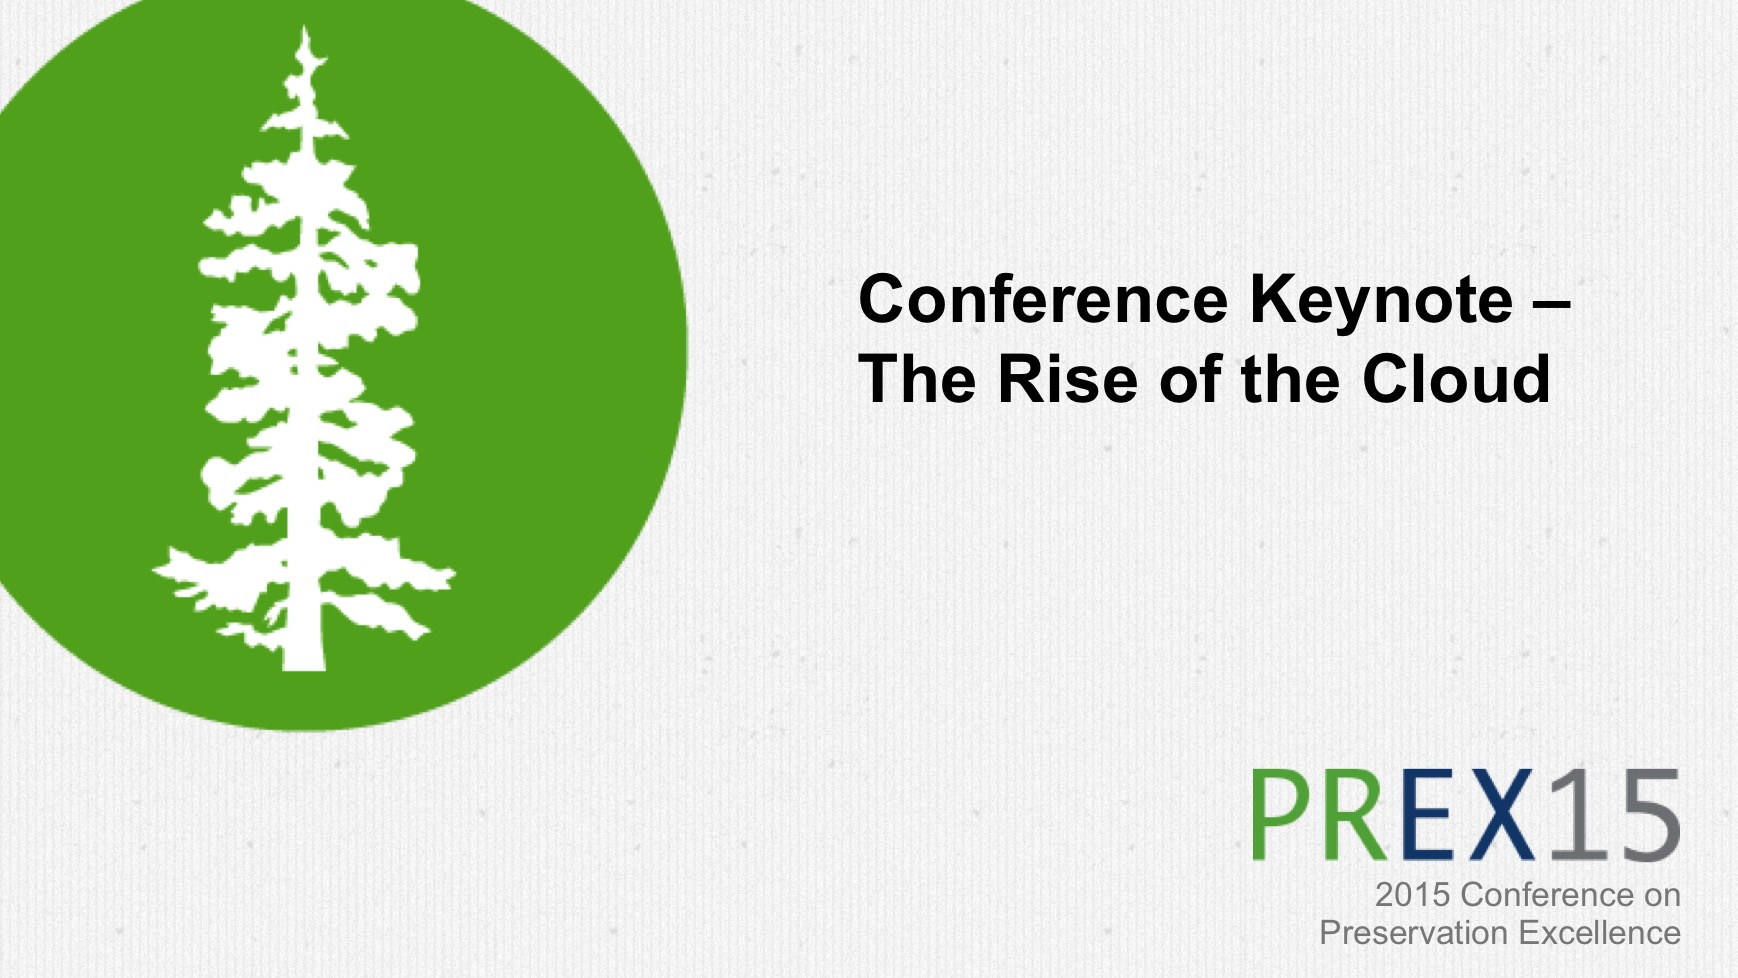 The Shift to Cloud Computing and What It Means for Security and Compliance – Conference Keynote